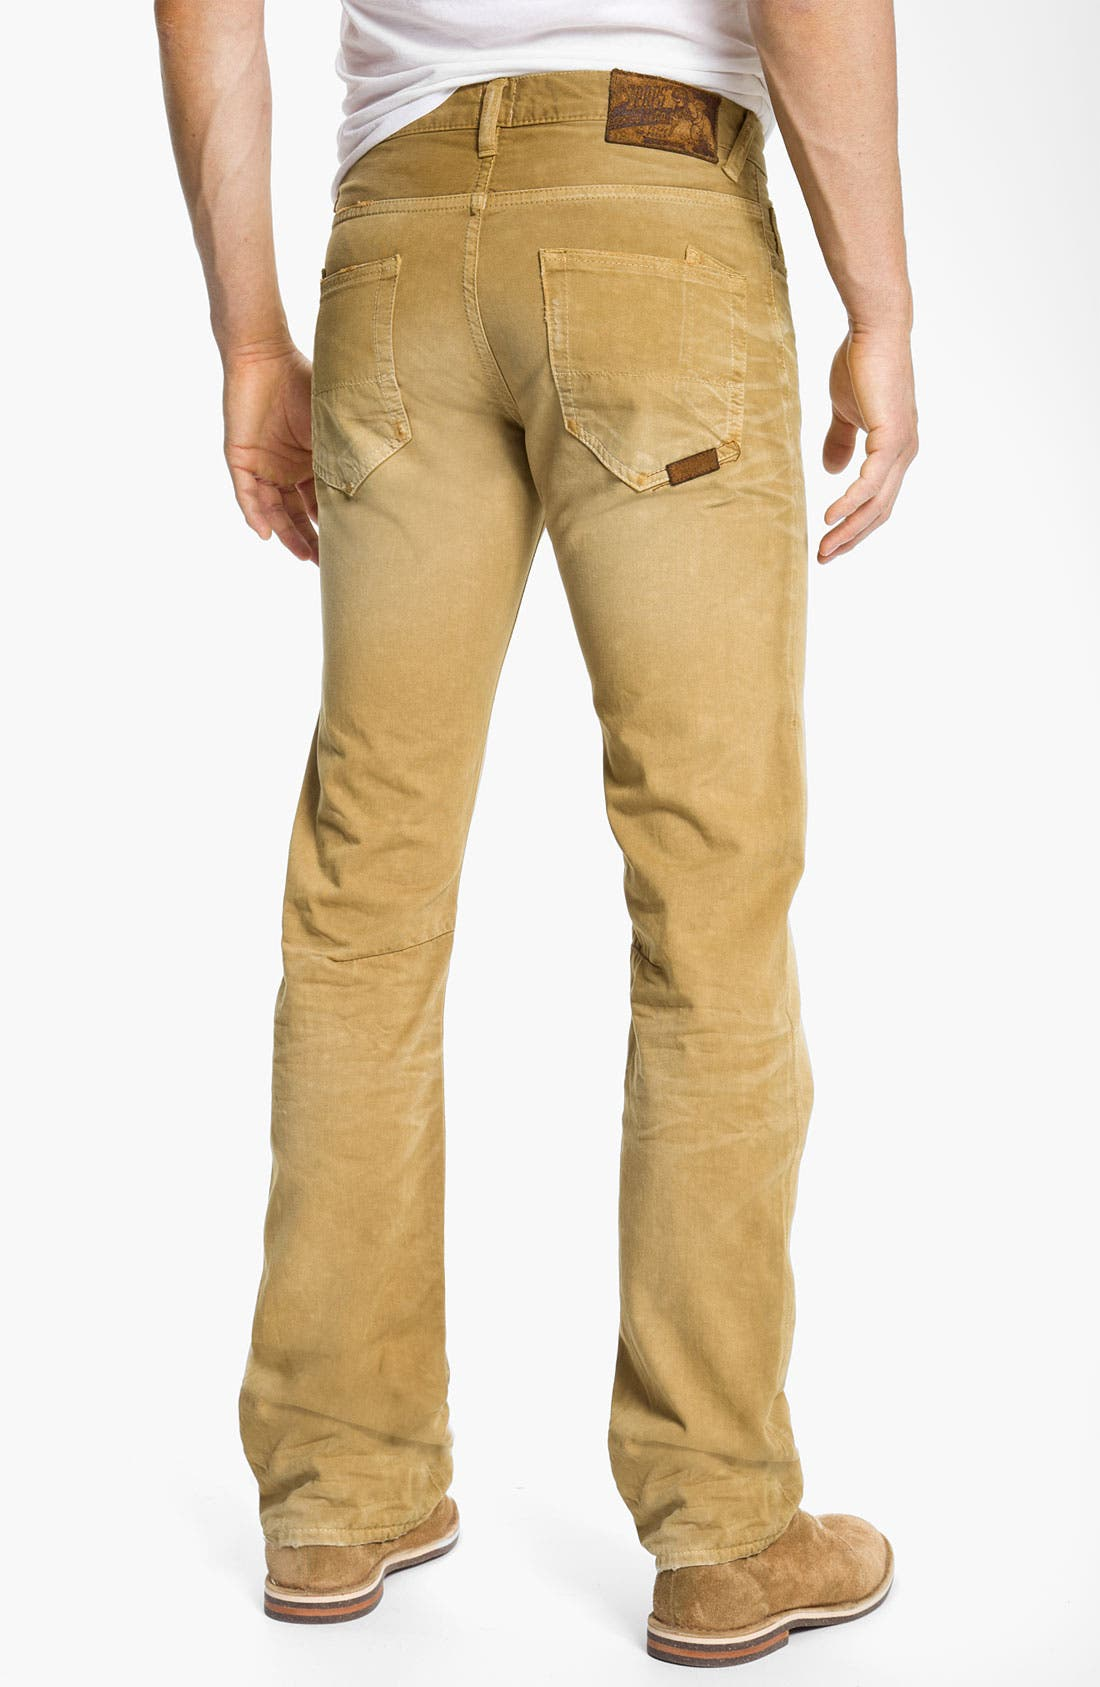 Alternate Image 1 Selected - PRPS 'Rambler' Slim Straight Leg Jeans (Base Camp)